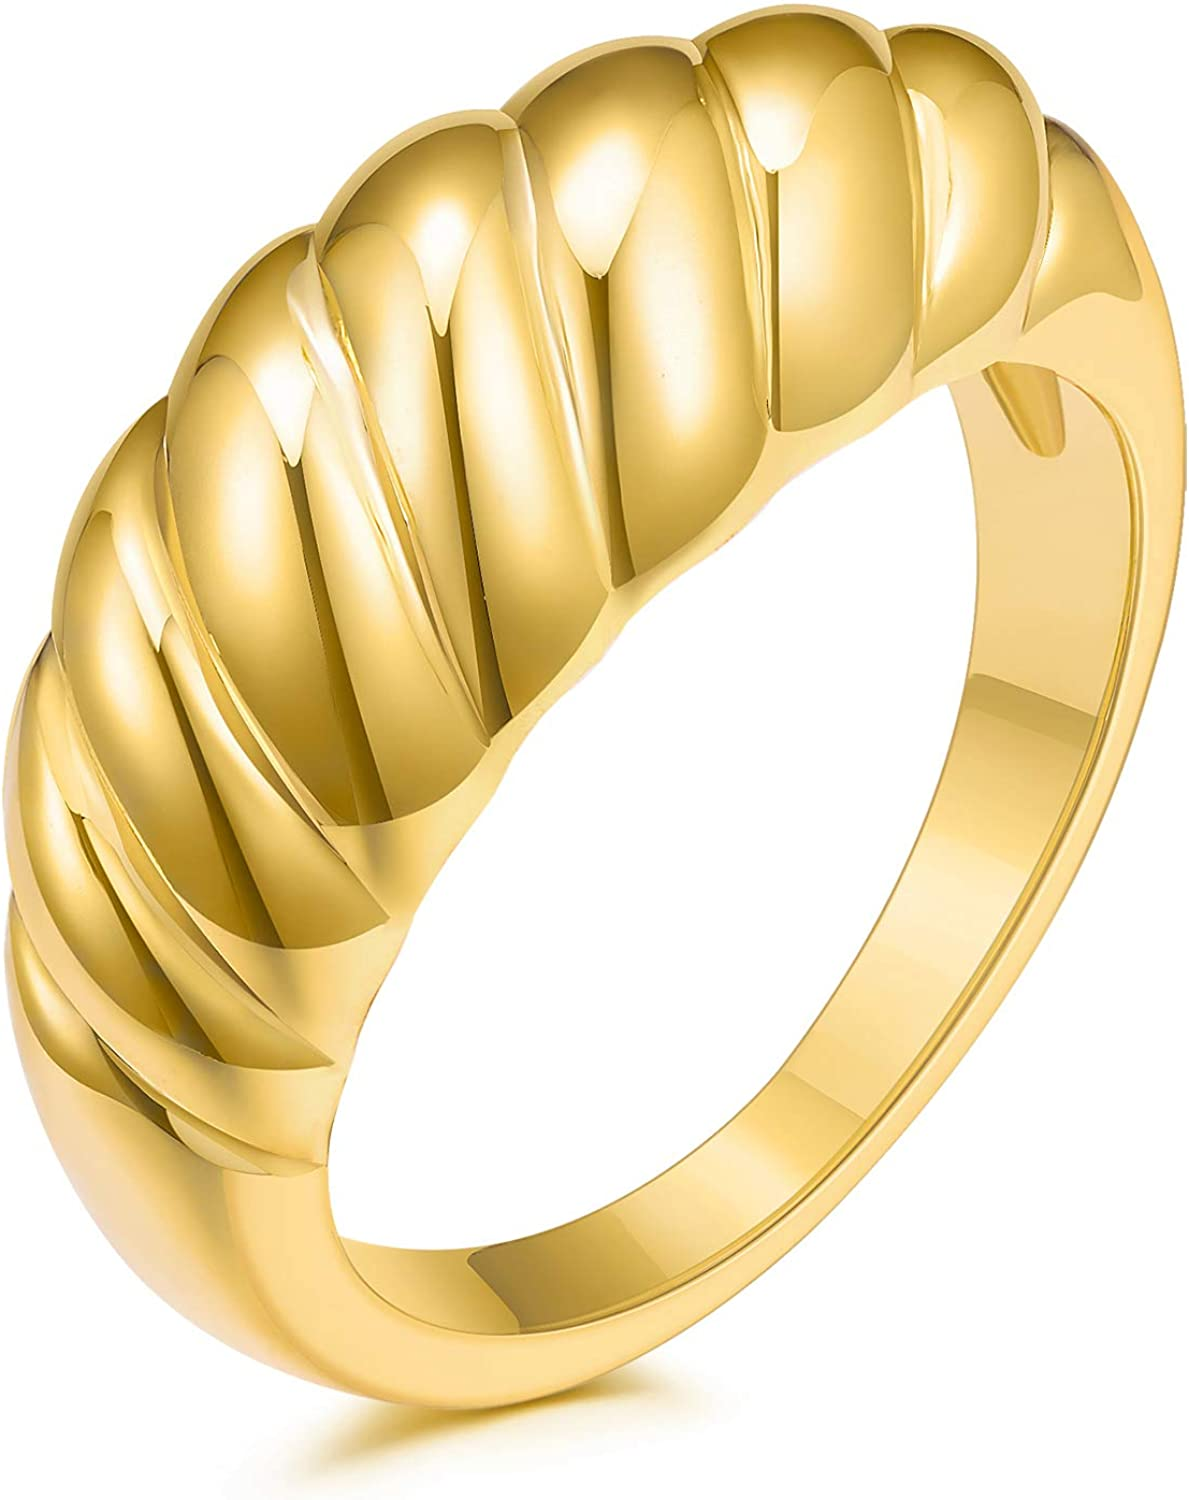 MARMELO  Surgical Steel Gold Croissant Open Ring  Unique Vintage Chunky Ring good for Everyday birthday gift  Gift box